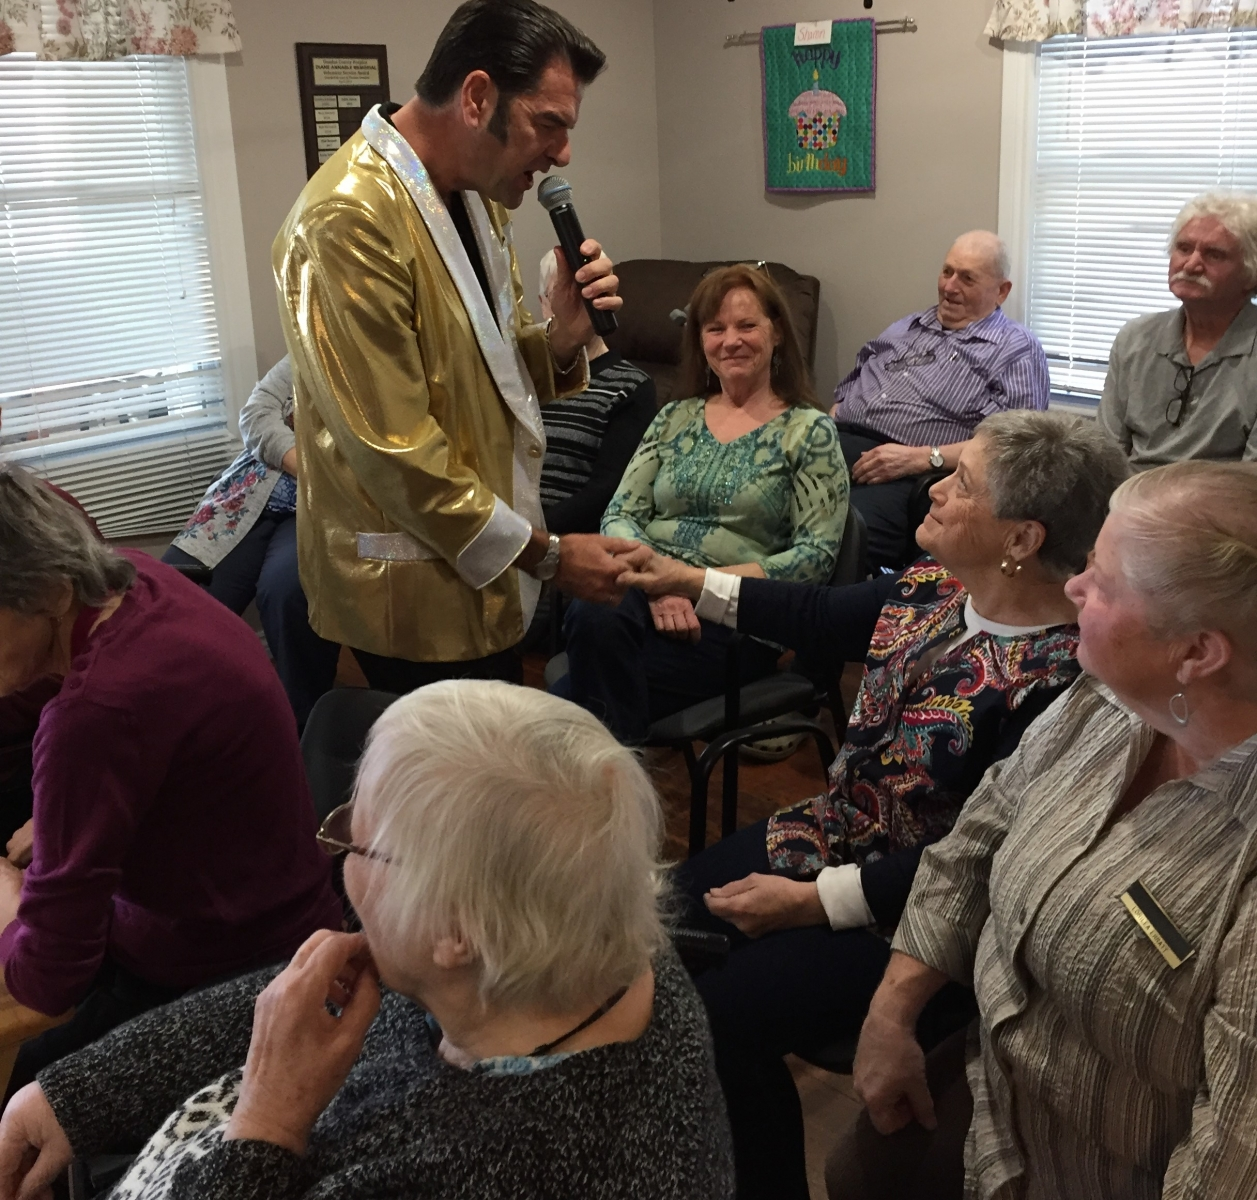 Elvis visits the day program